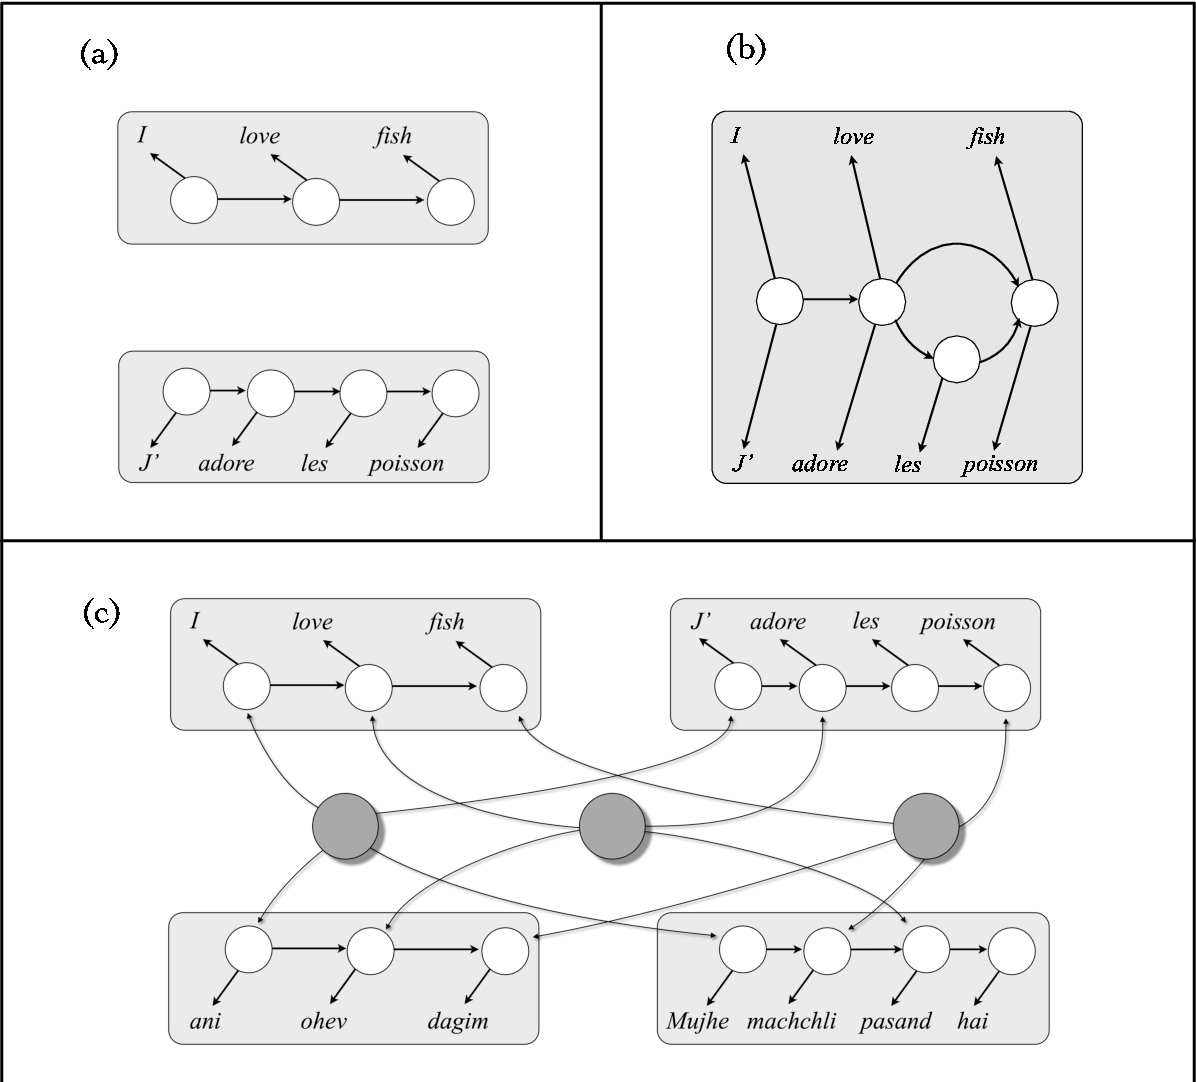 Figure 1 for Multilingual Part-of-Speech Tagging: Two Unsupervised Approaches